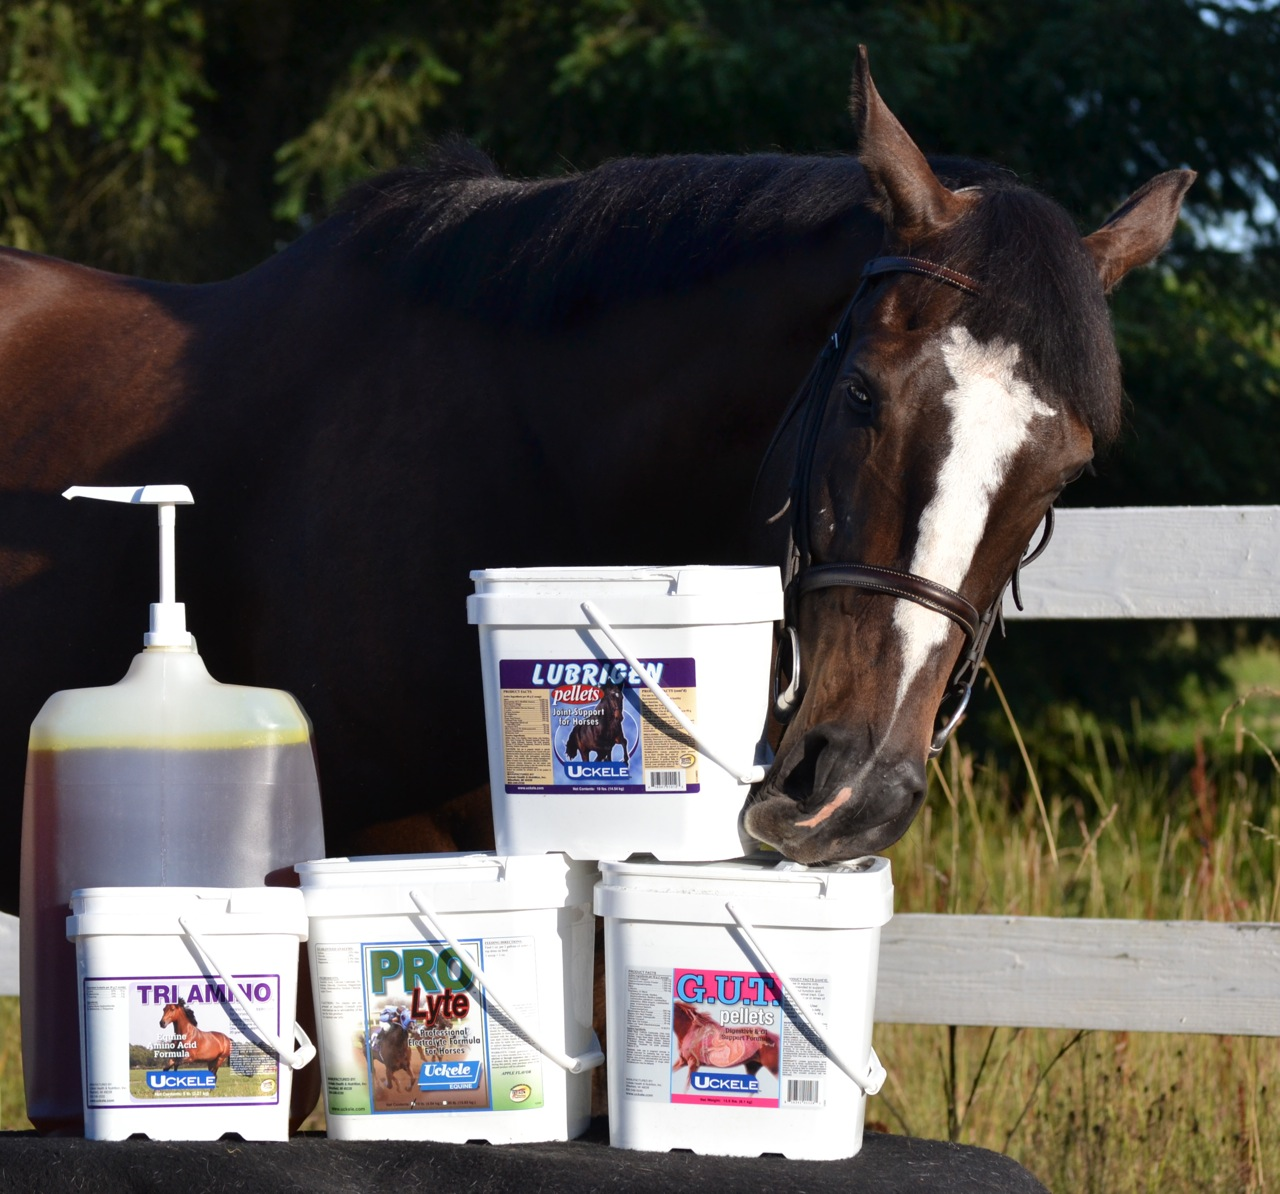 Horse nuzzling Uckele supplements